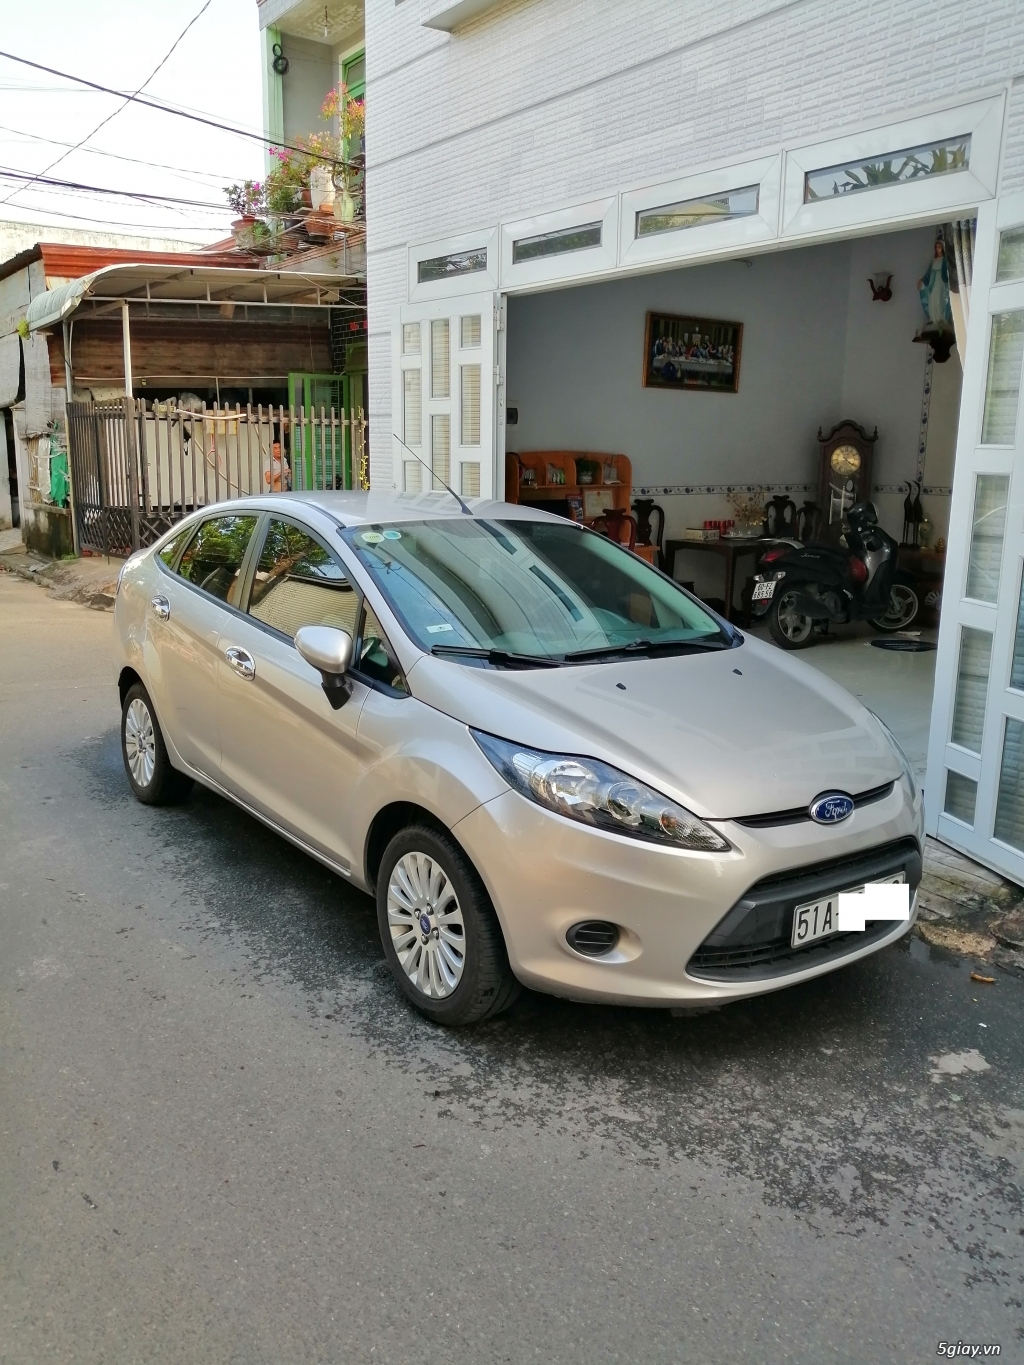 Xe	Ford Fiesta	1.6 AT	2013	-GHINA - 1